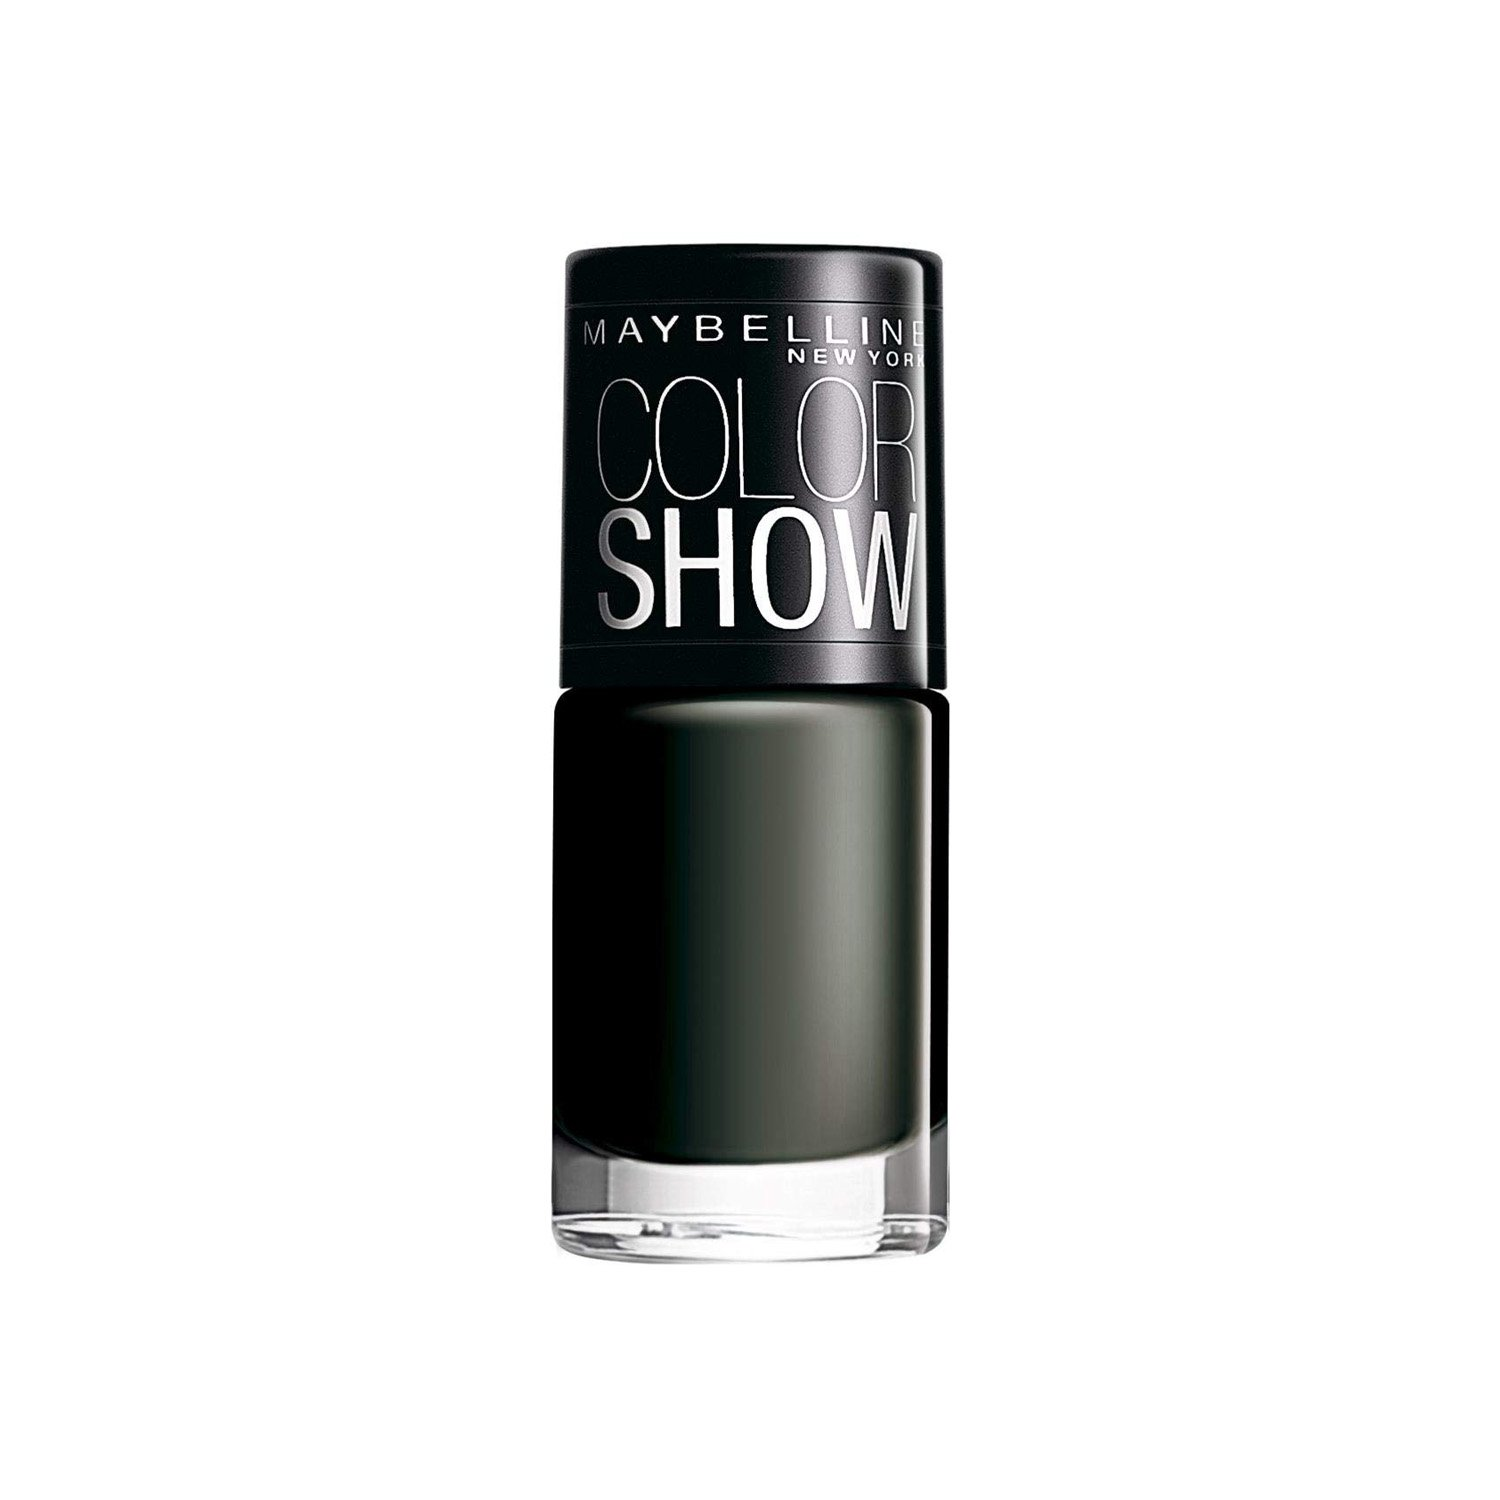 Maybelline New York Color Show Nail Lacquer